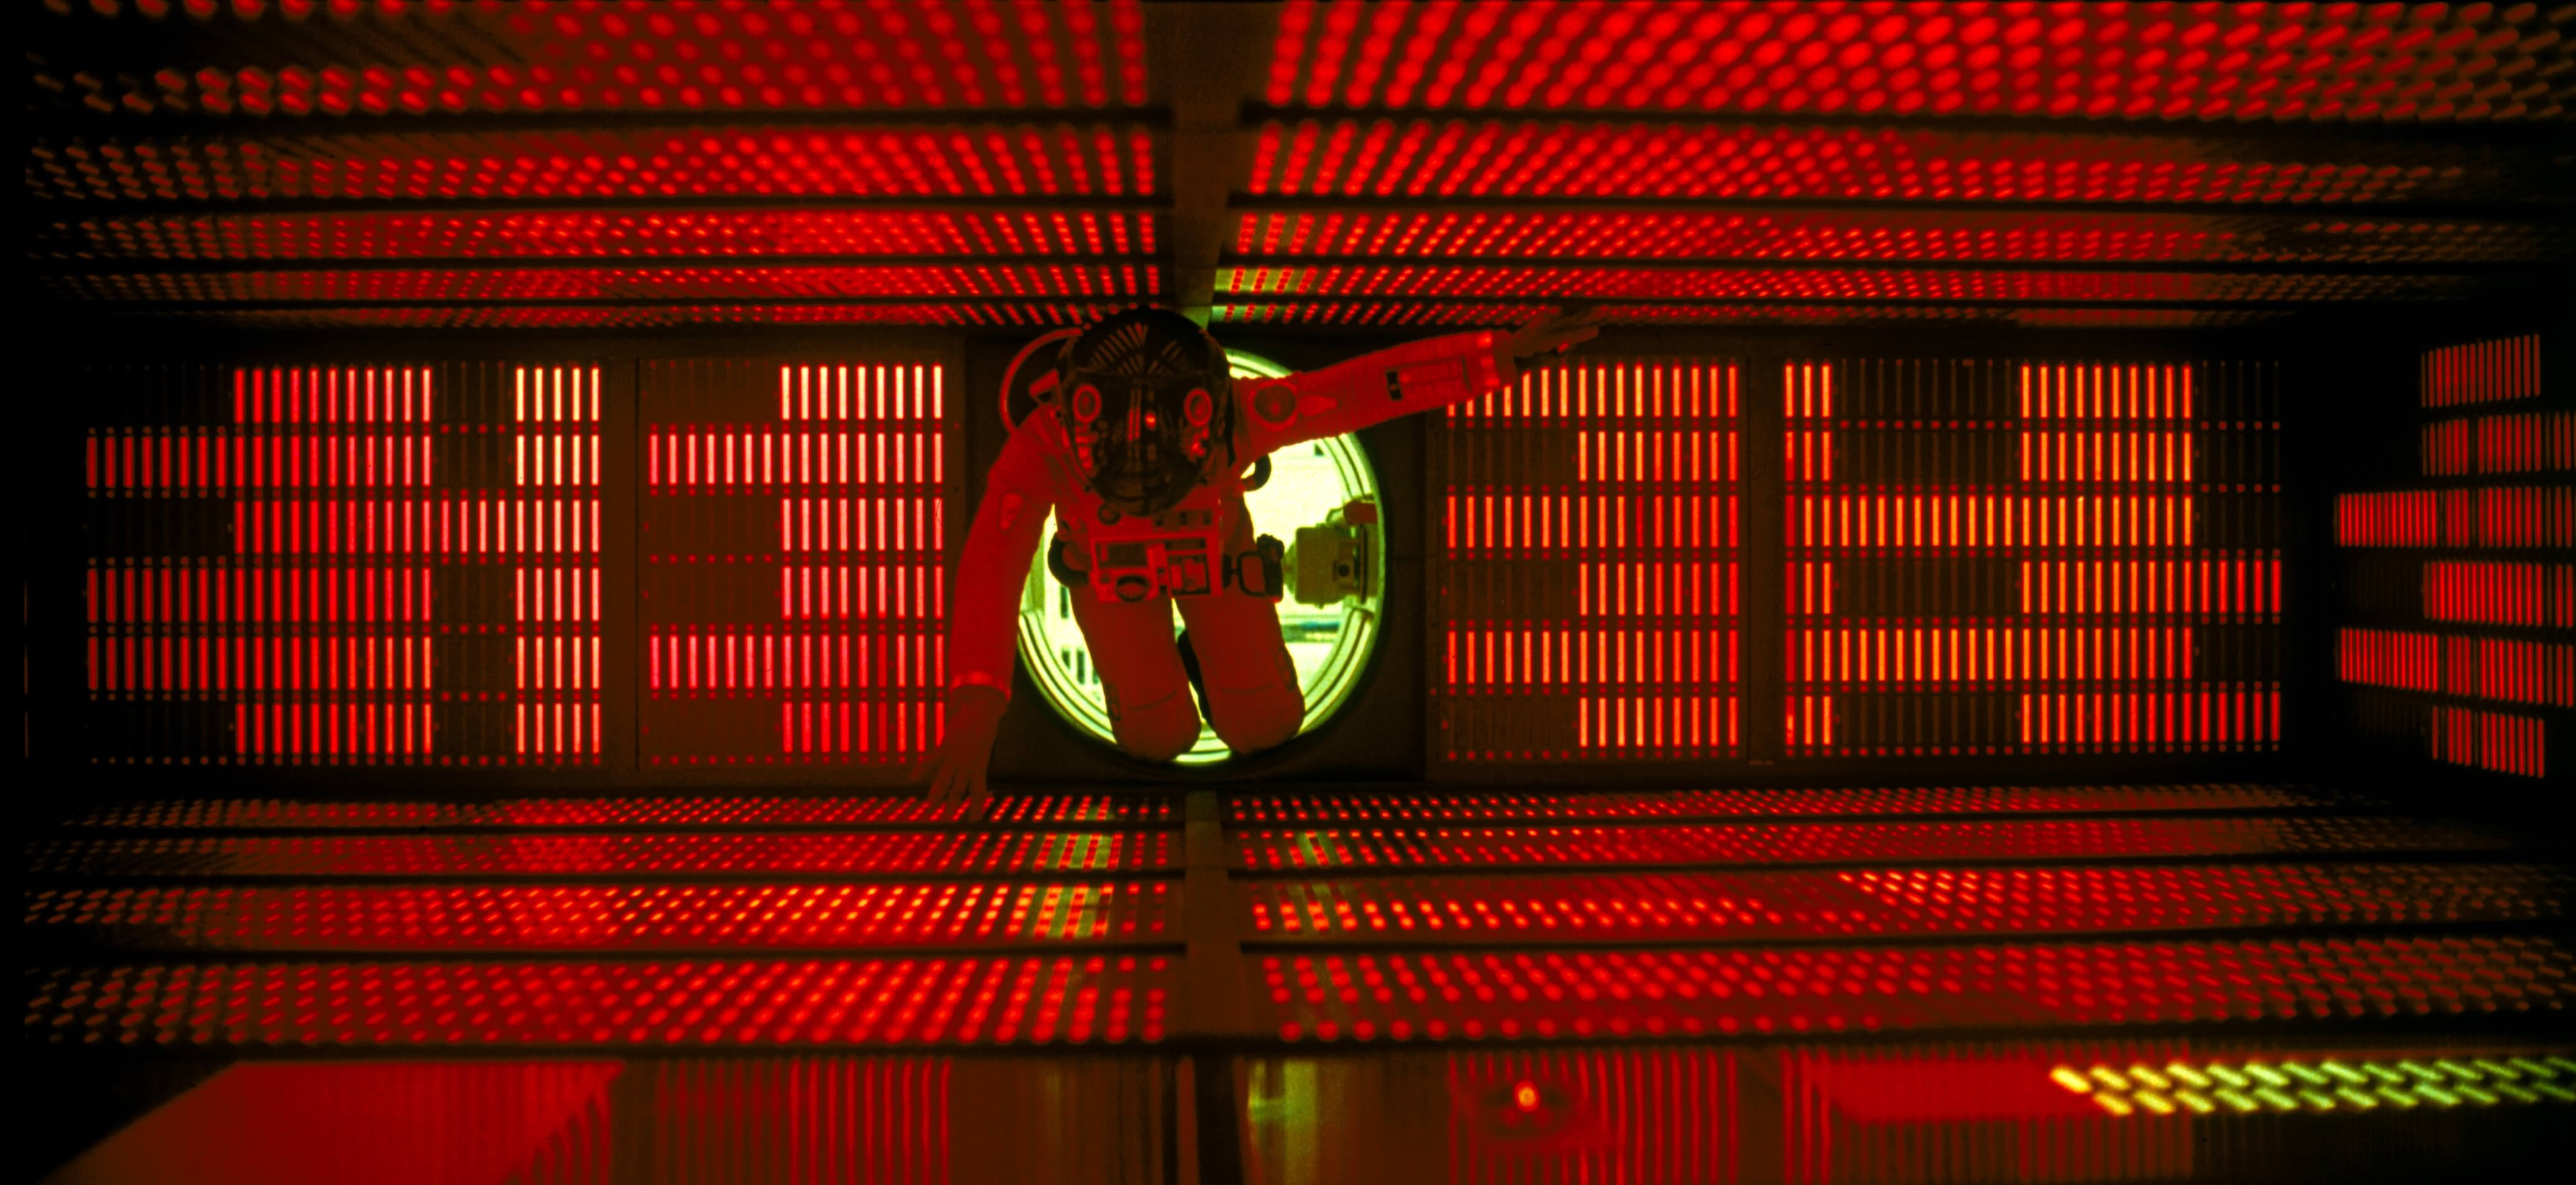 The world's first 8K TV channel has kicked off with masterpiece '2001: A Space Odyssey'